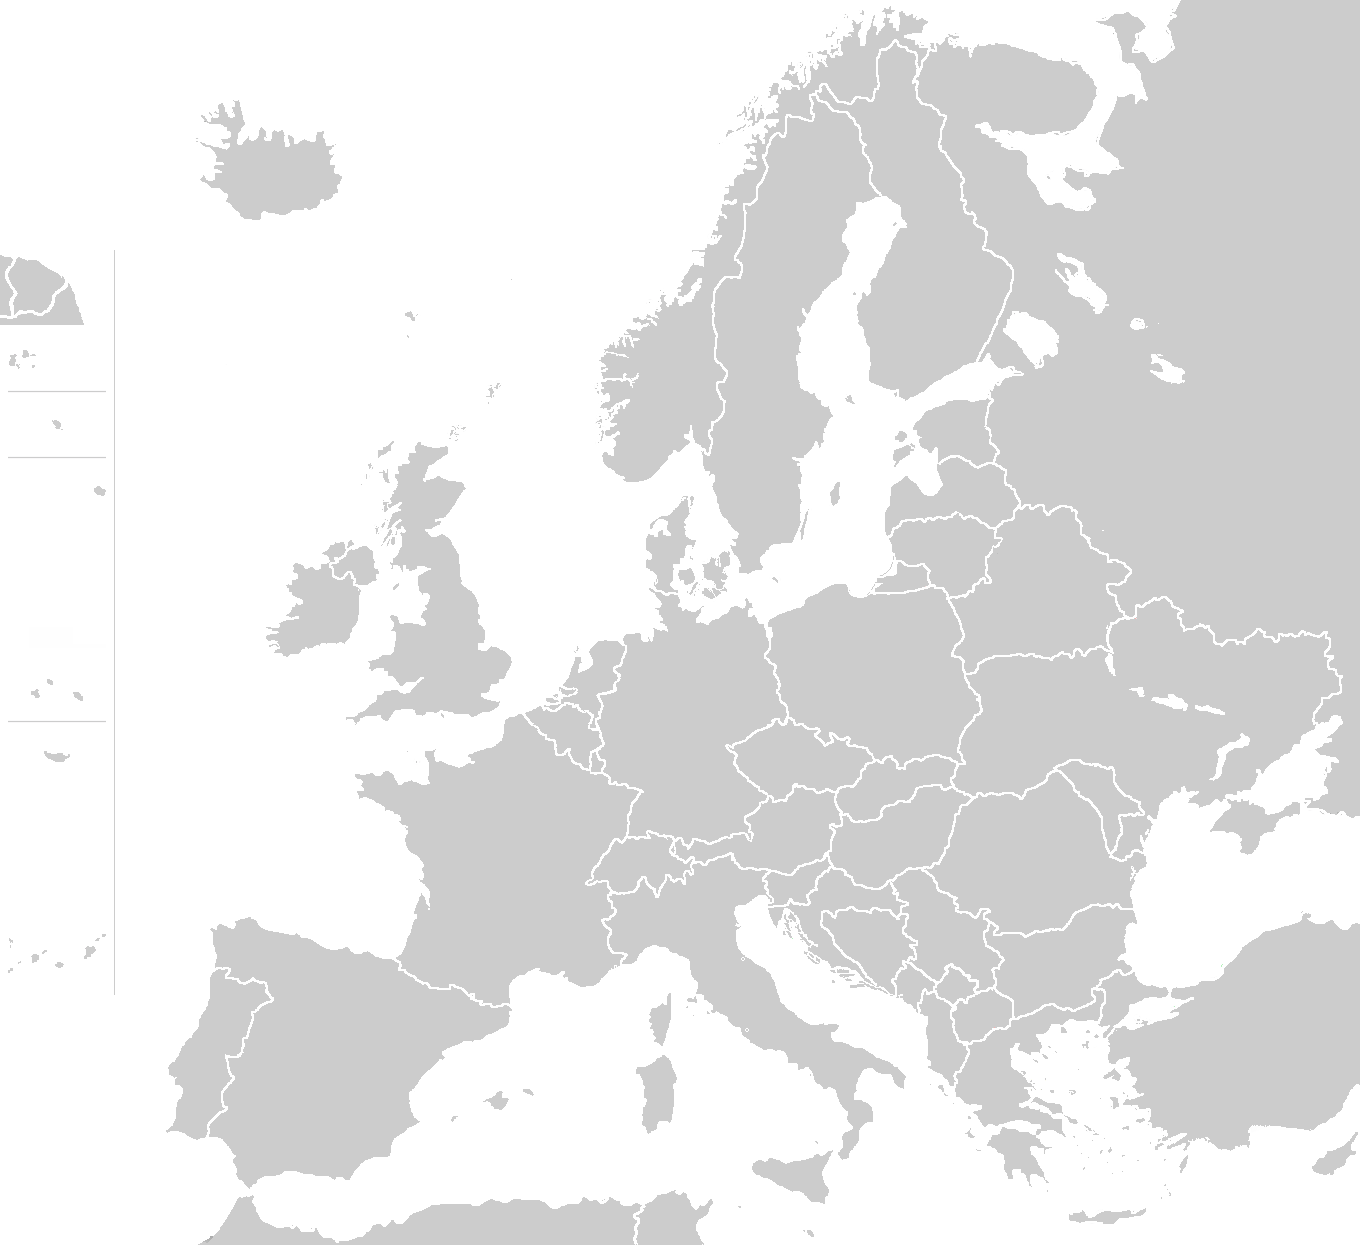 File:Europe blank map.png - Wikimedia Commons